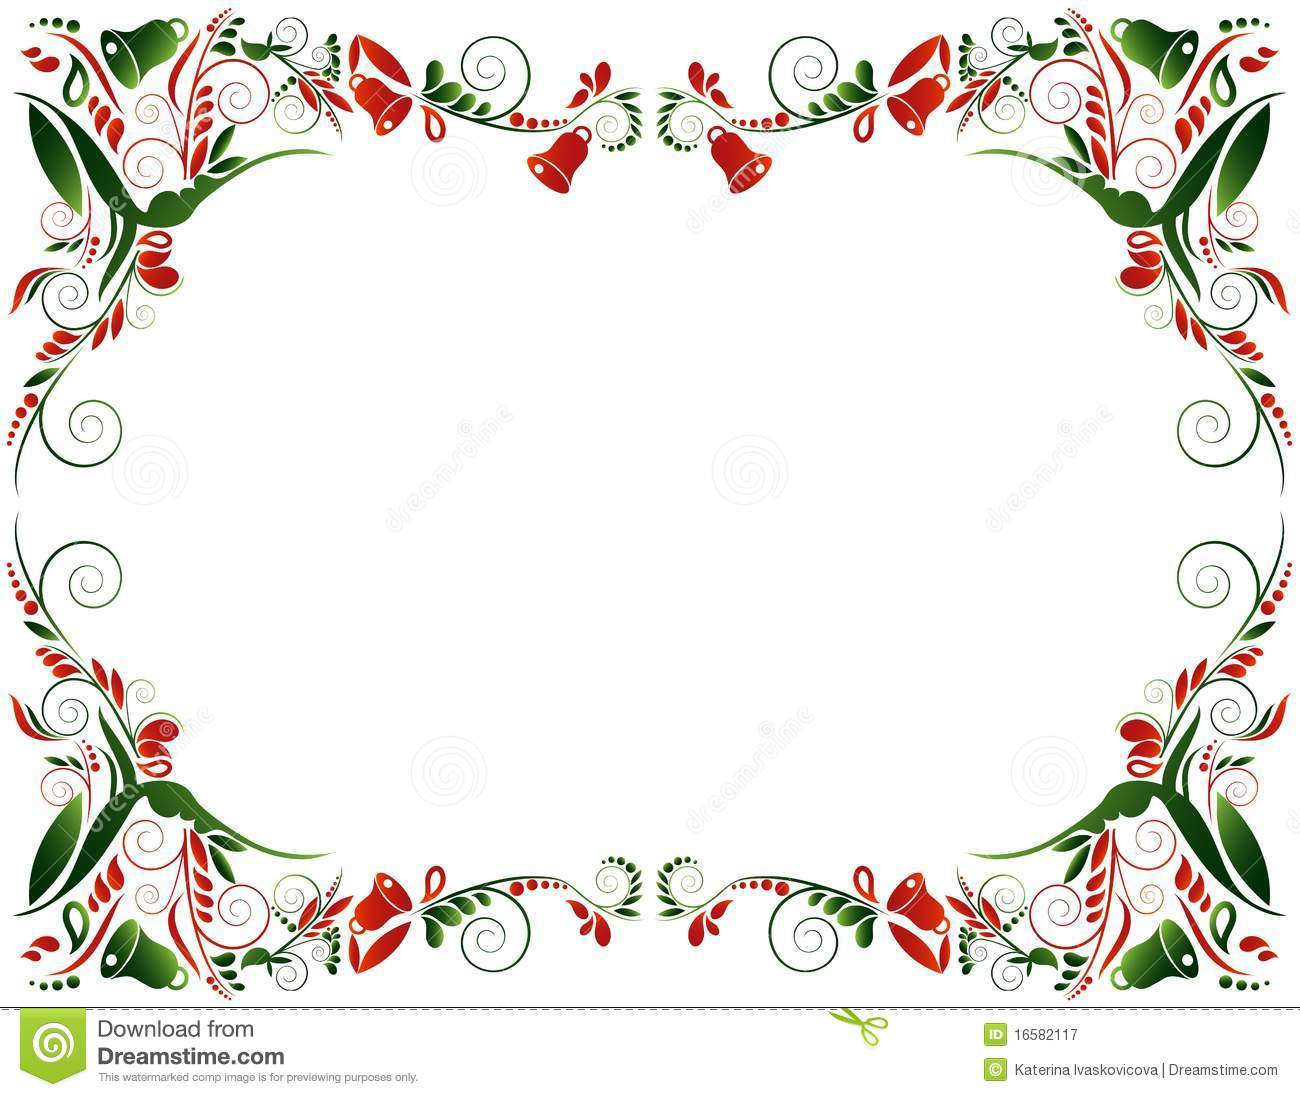 Christmas Frame Royalty Free Stock Photography - Image: 16582117